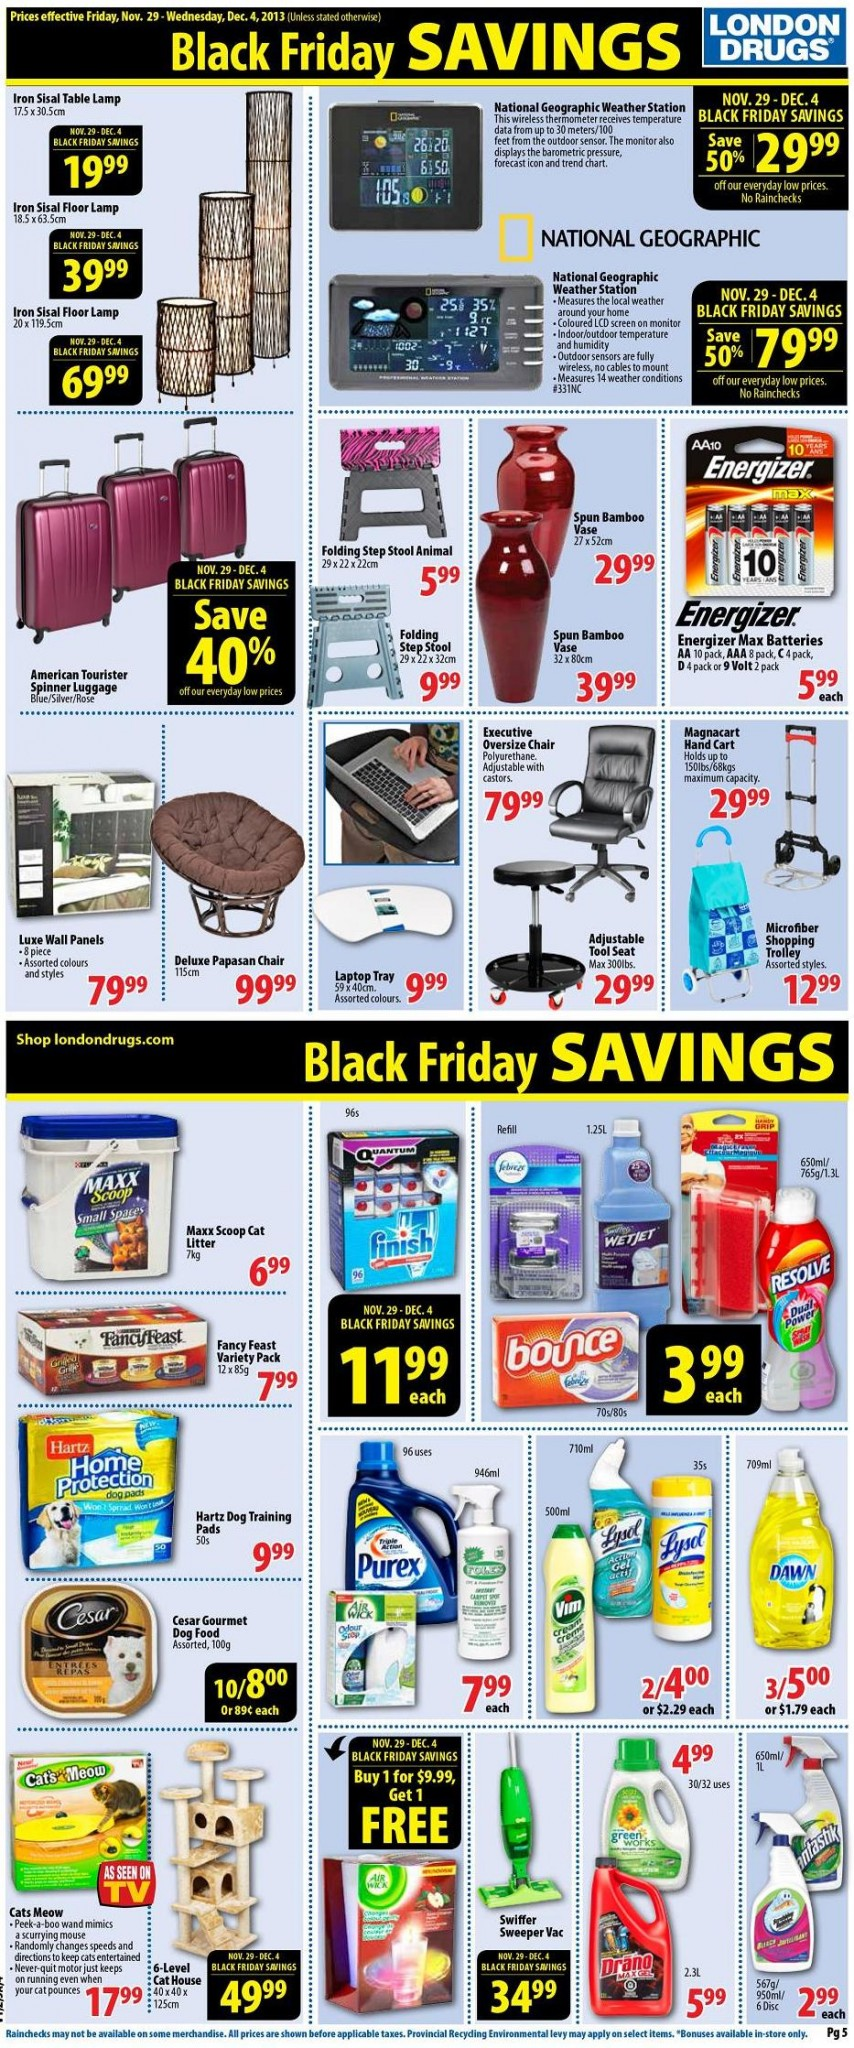 London Drugs Canada Black Friday 2013 Flyer Sales And